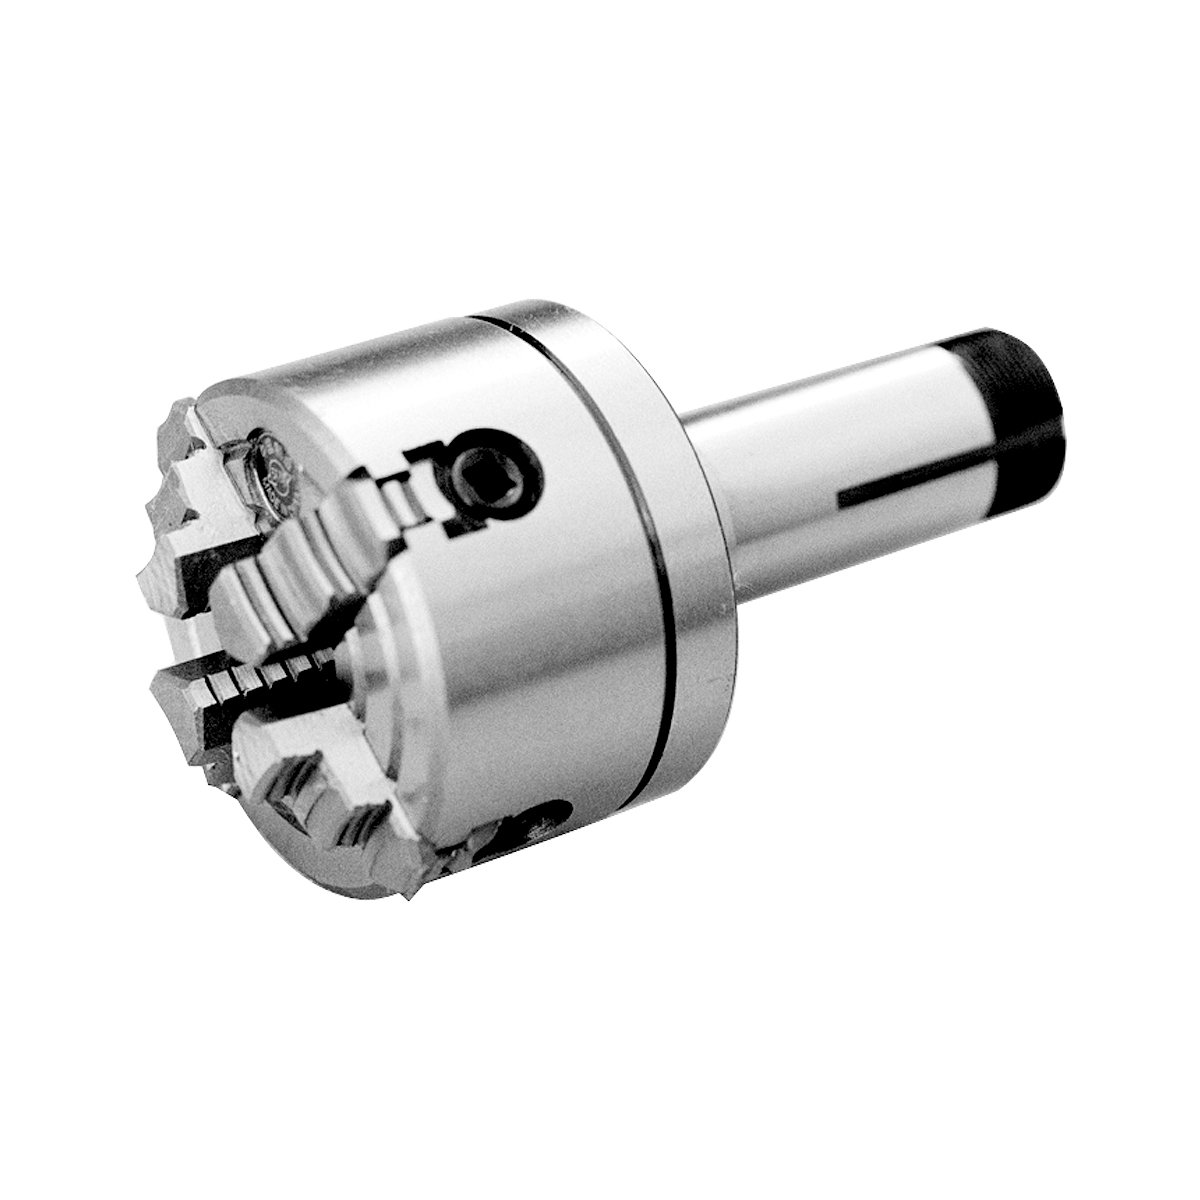 HHIP 3900-4712 5C Mount 3'' 4-Jaw Independent Lathe Chuck by HHIP